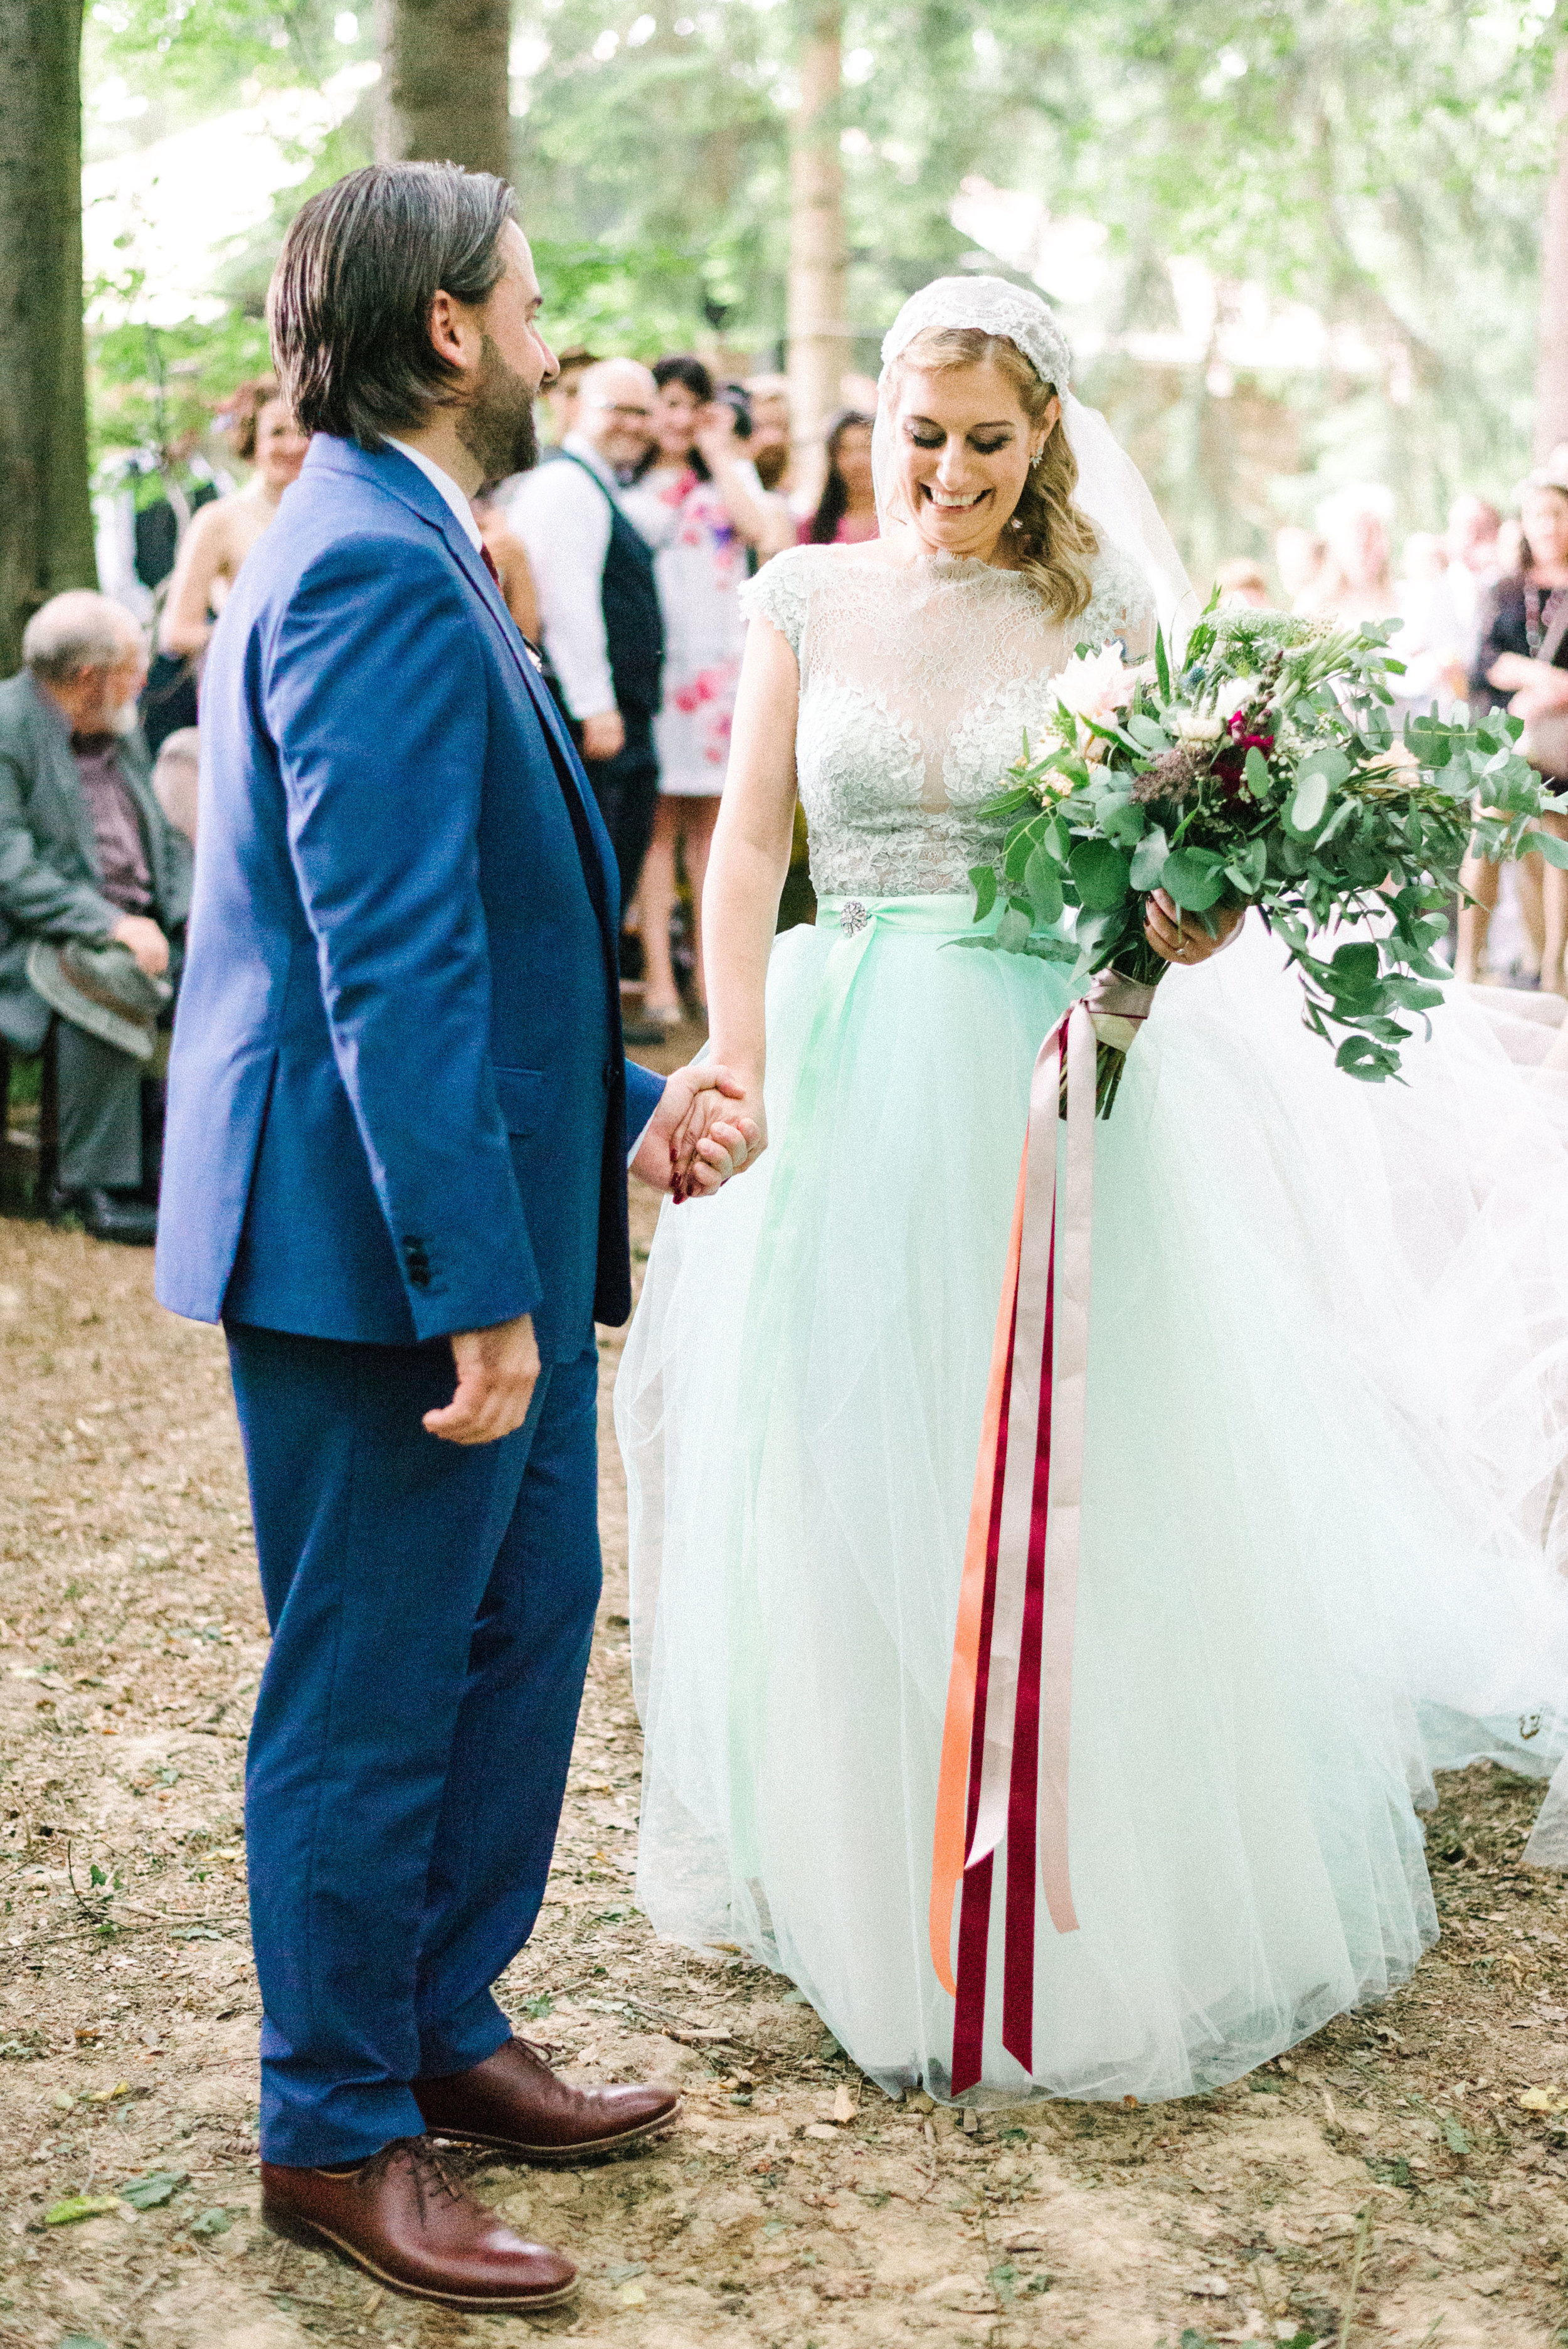 Folk festival wedding - In the middle of the forest